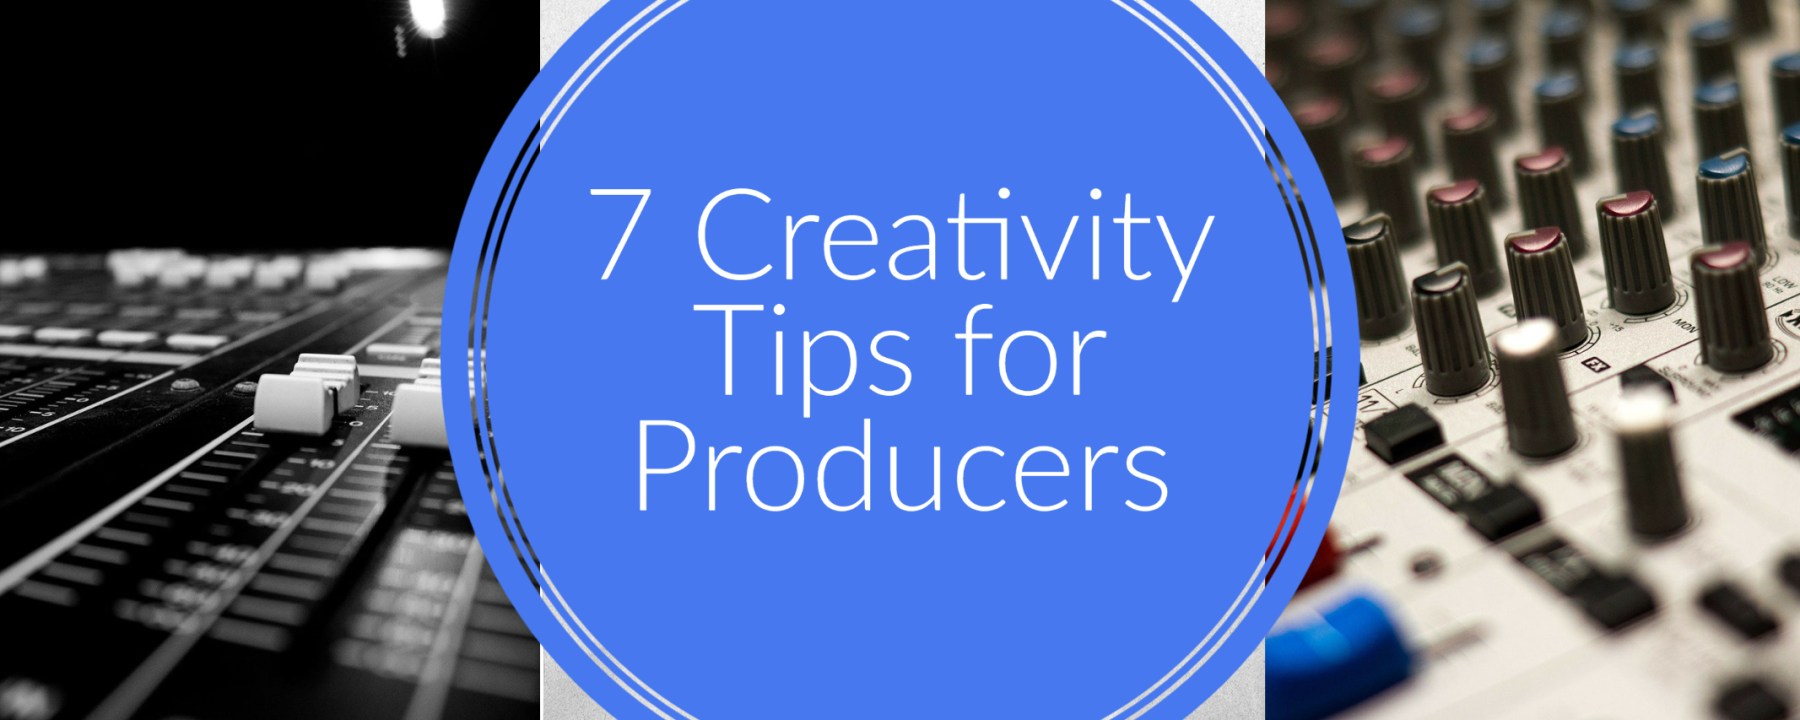 7 creativity tips for producers